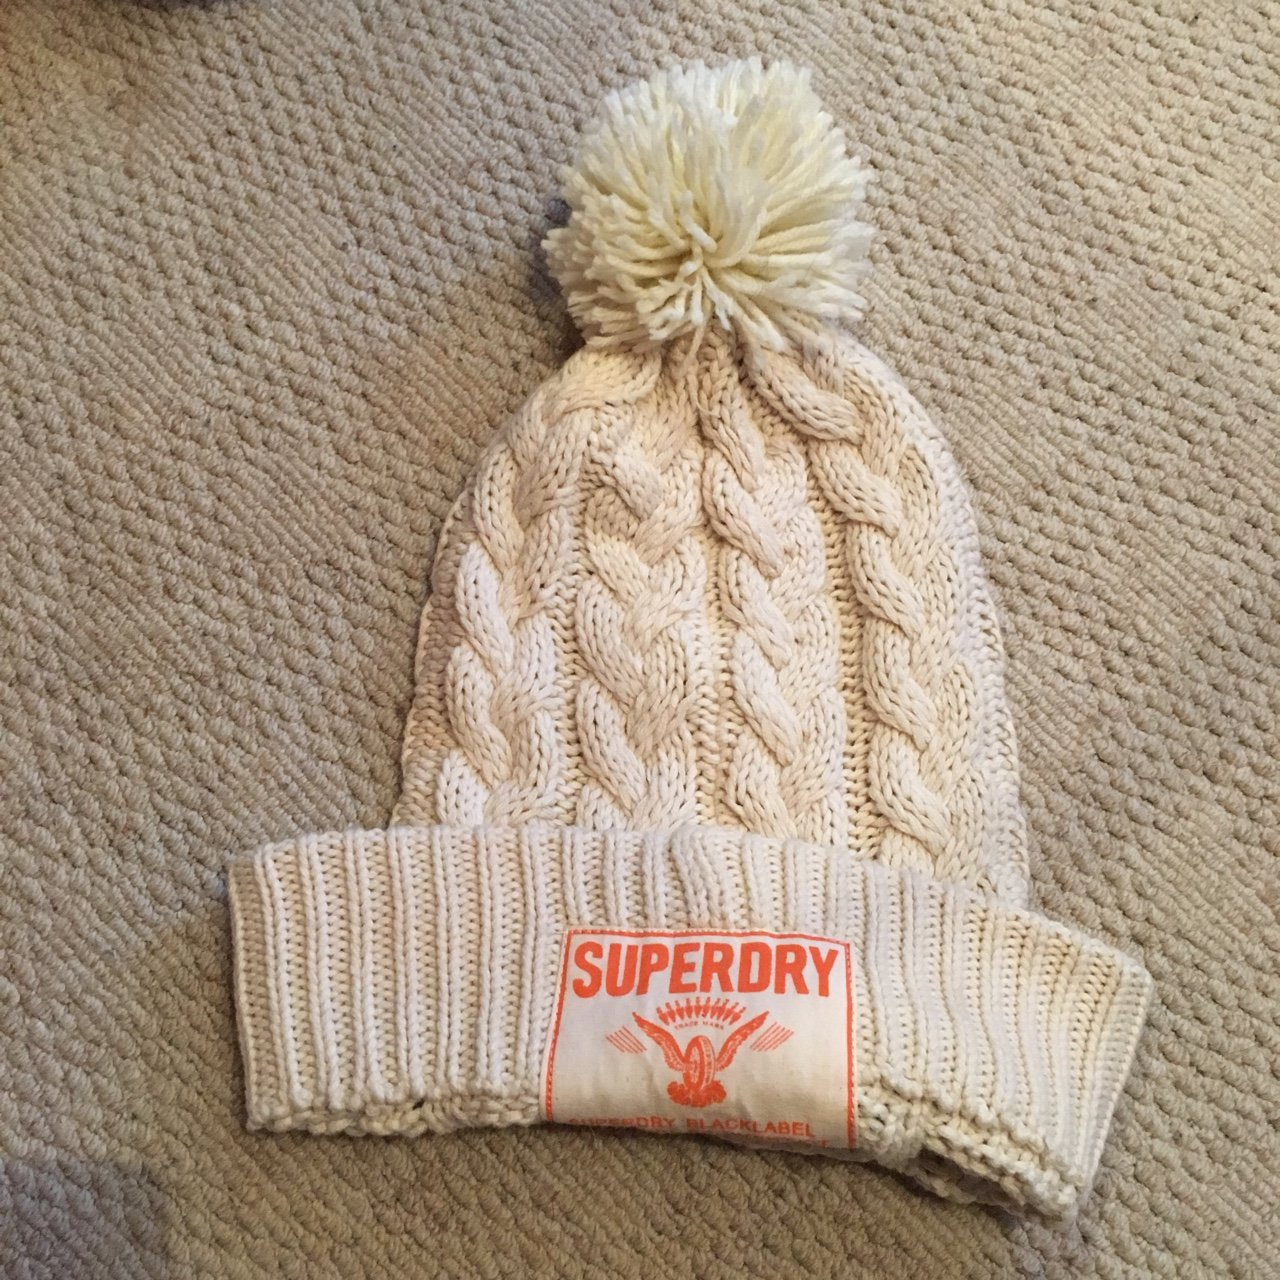 aecd9dada02 Genuine Superdry cream hat with Pom Pom. Great for winter. - Depop